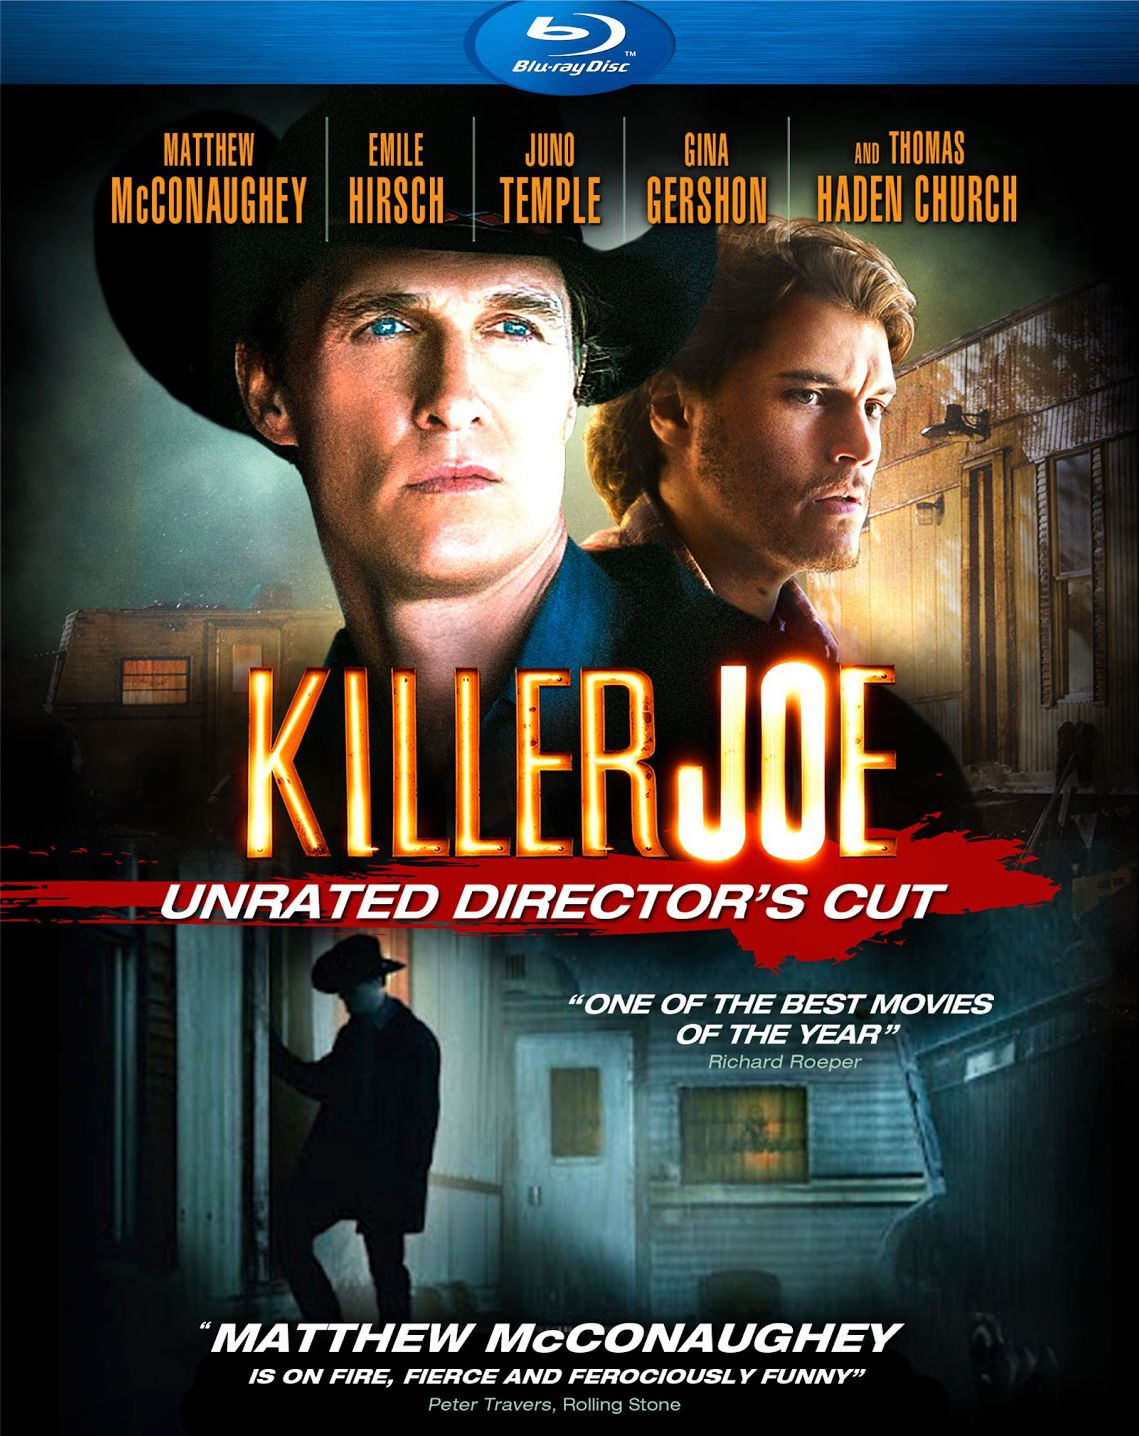 Publicity still for Killer Joe